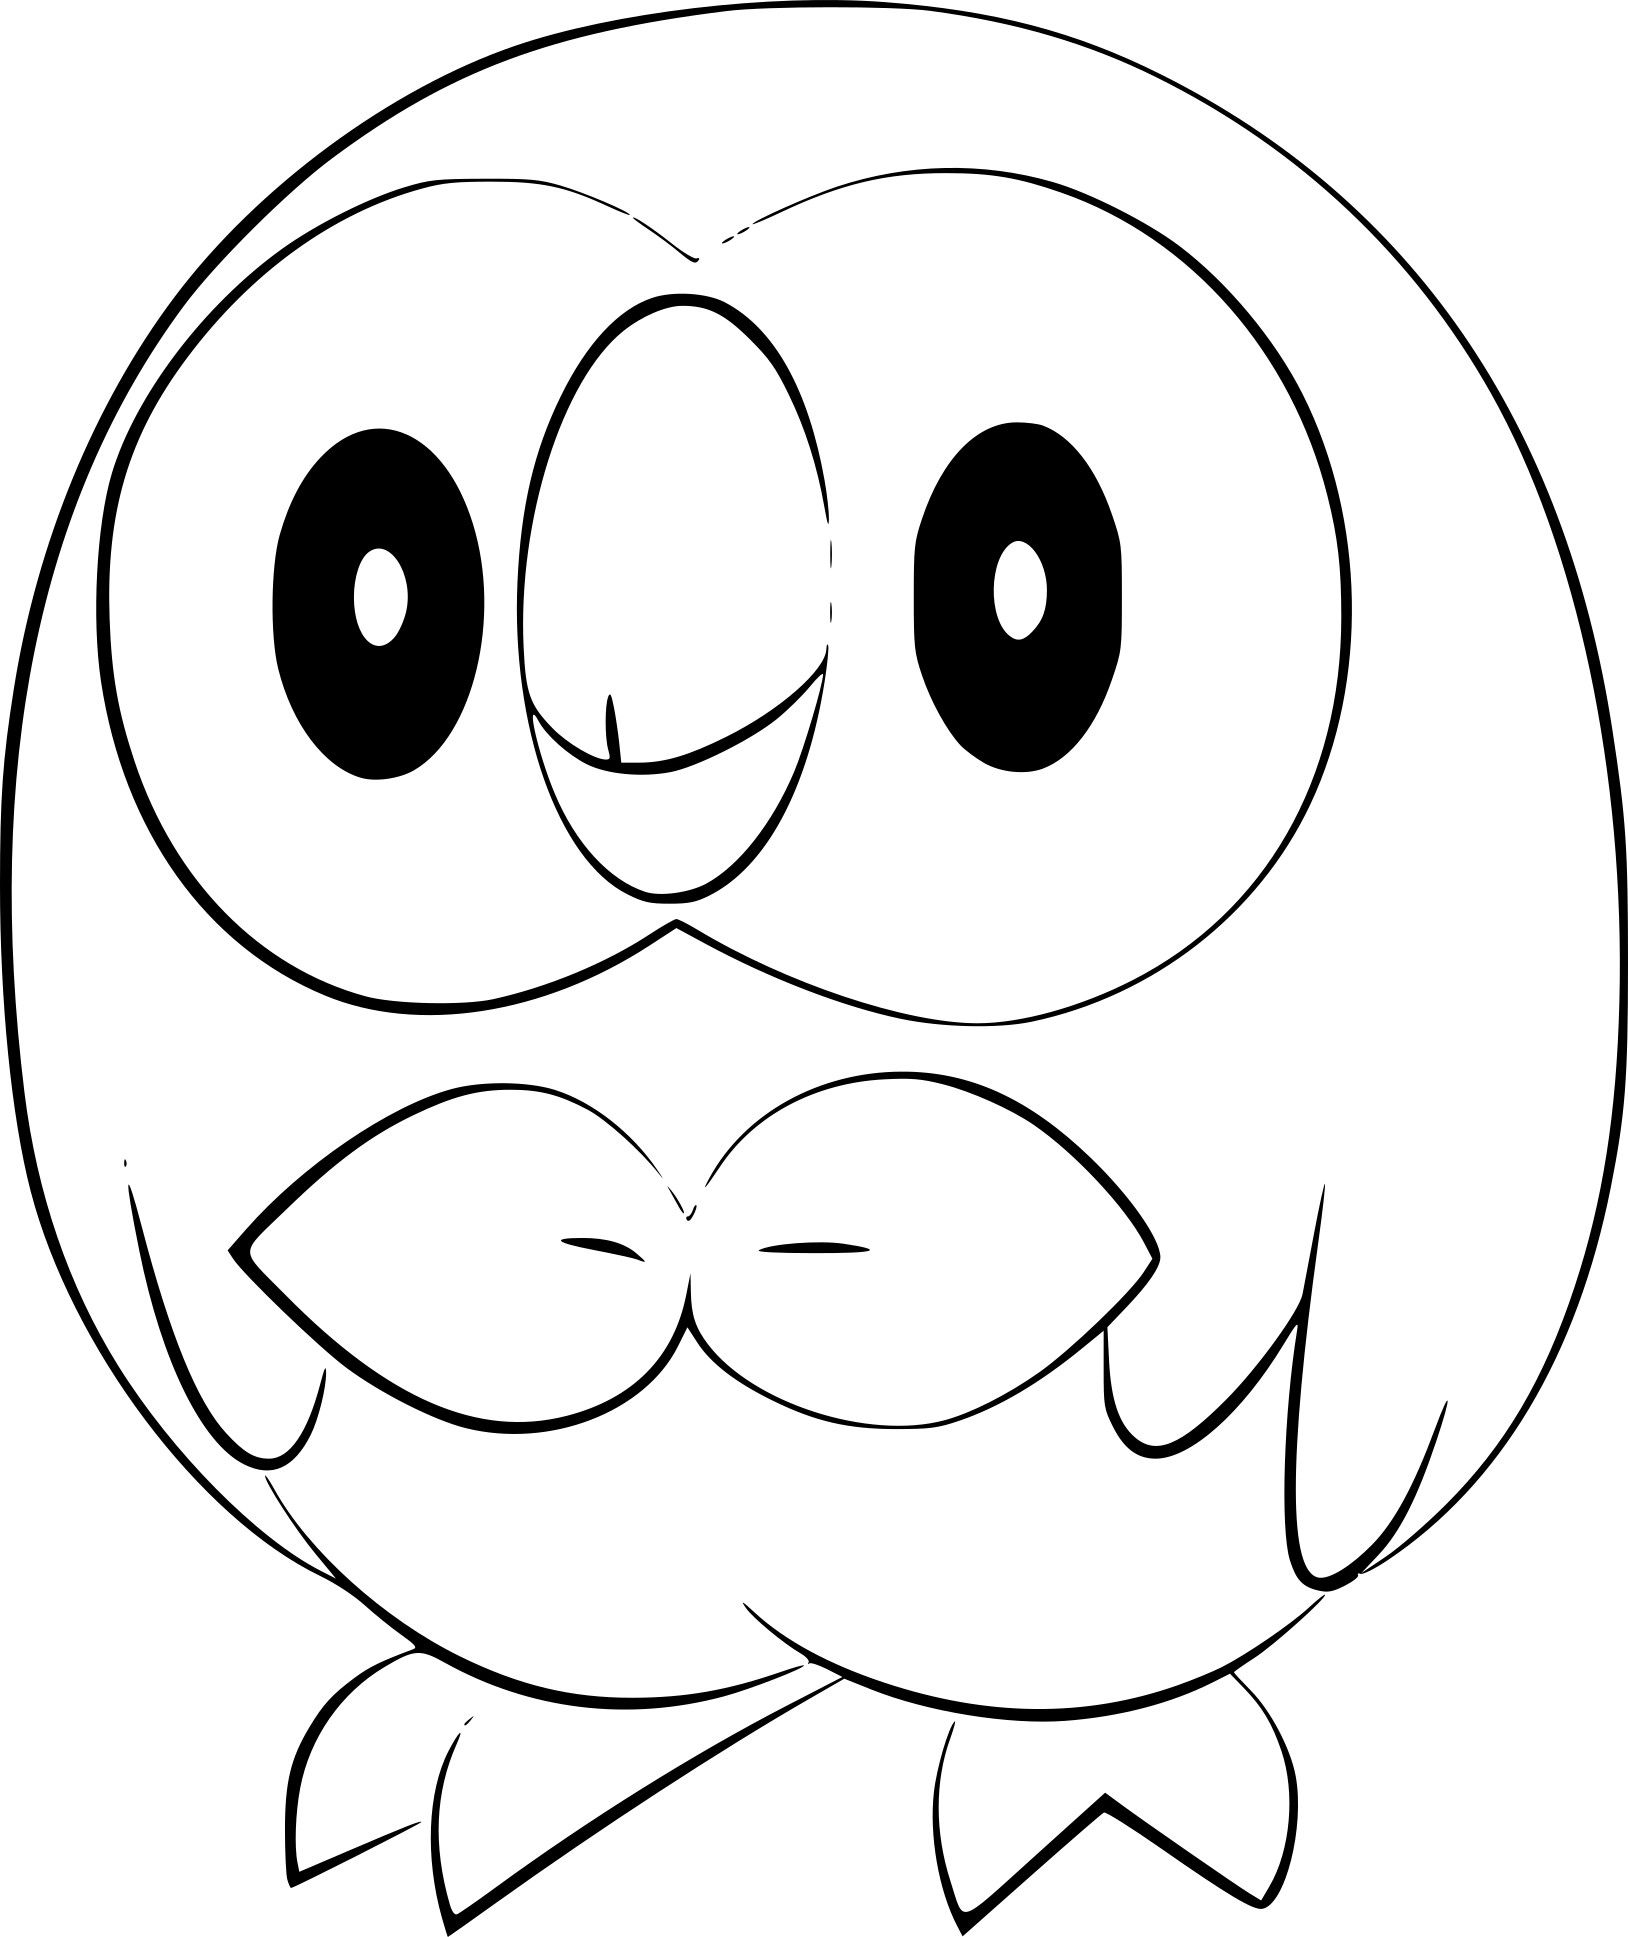 pokemon rowlet coloring page pokemon rowlet anime | Cute Pokemon ...